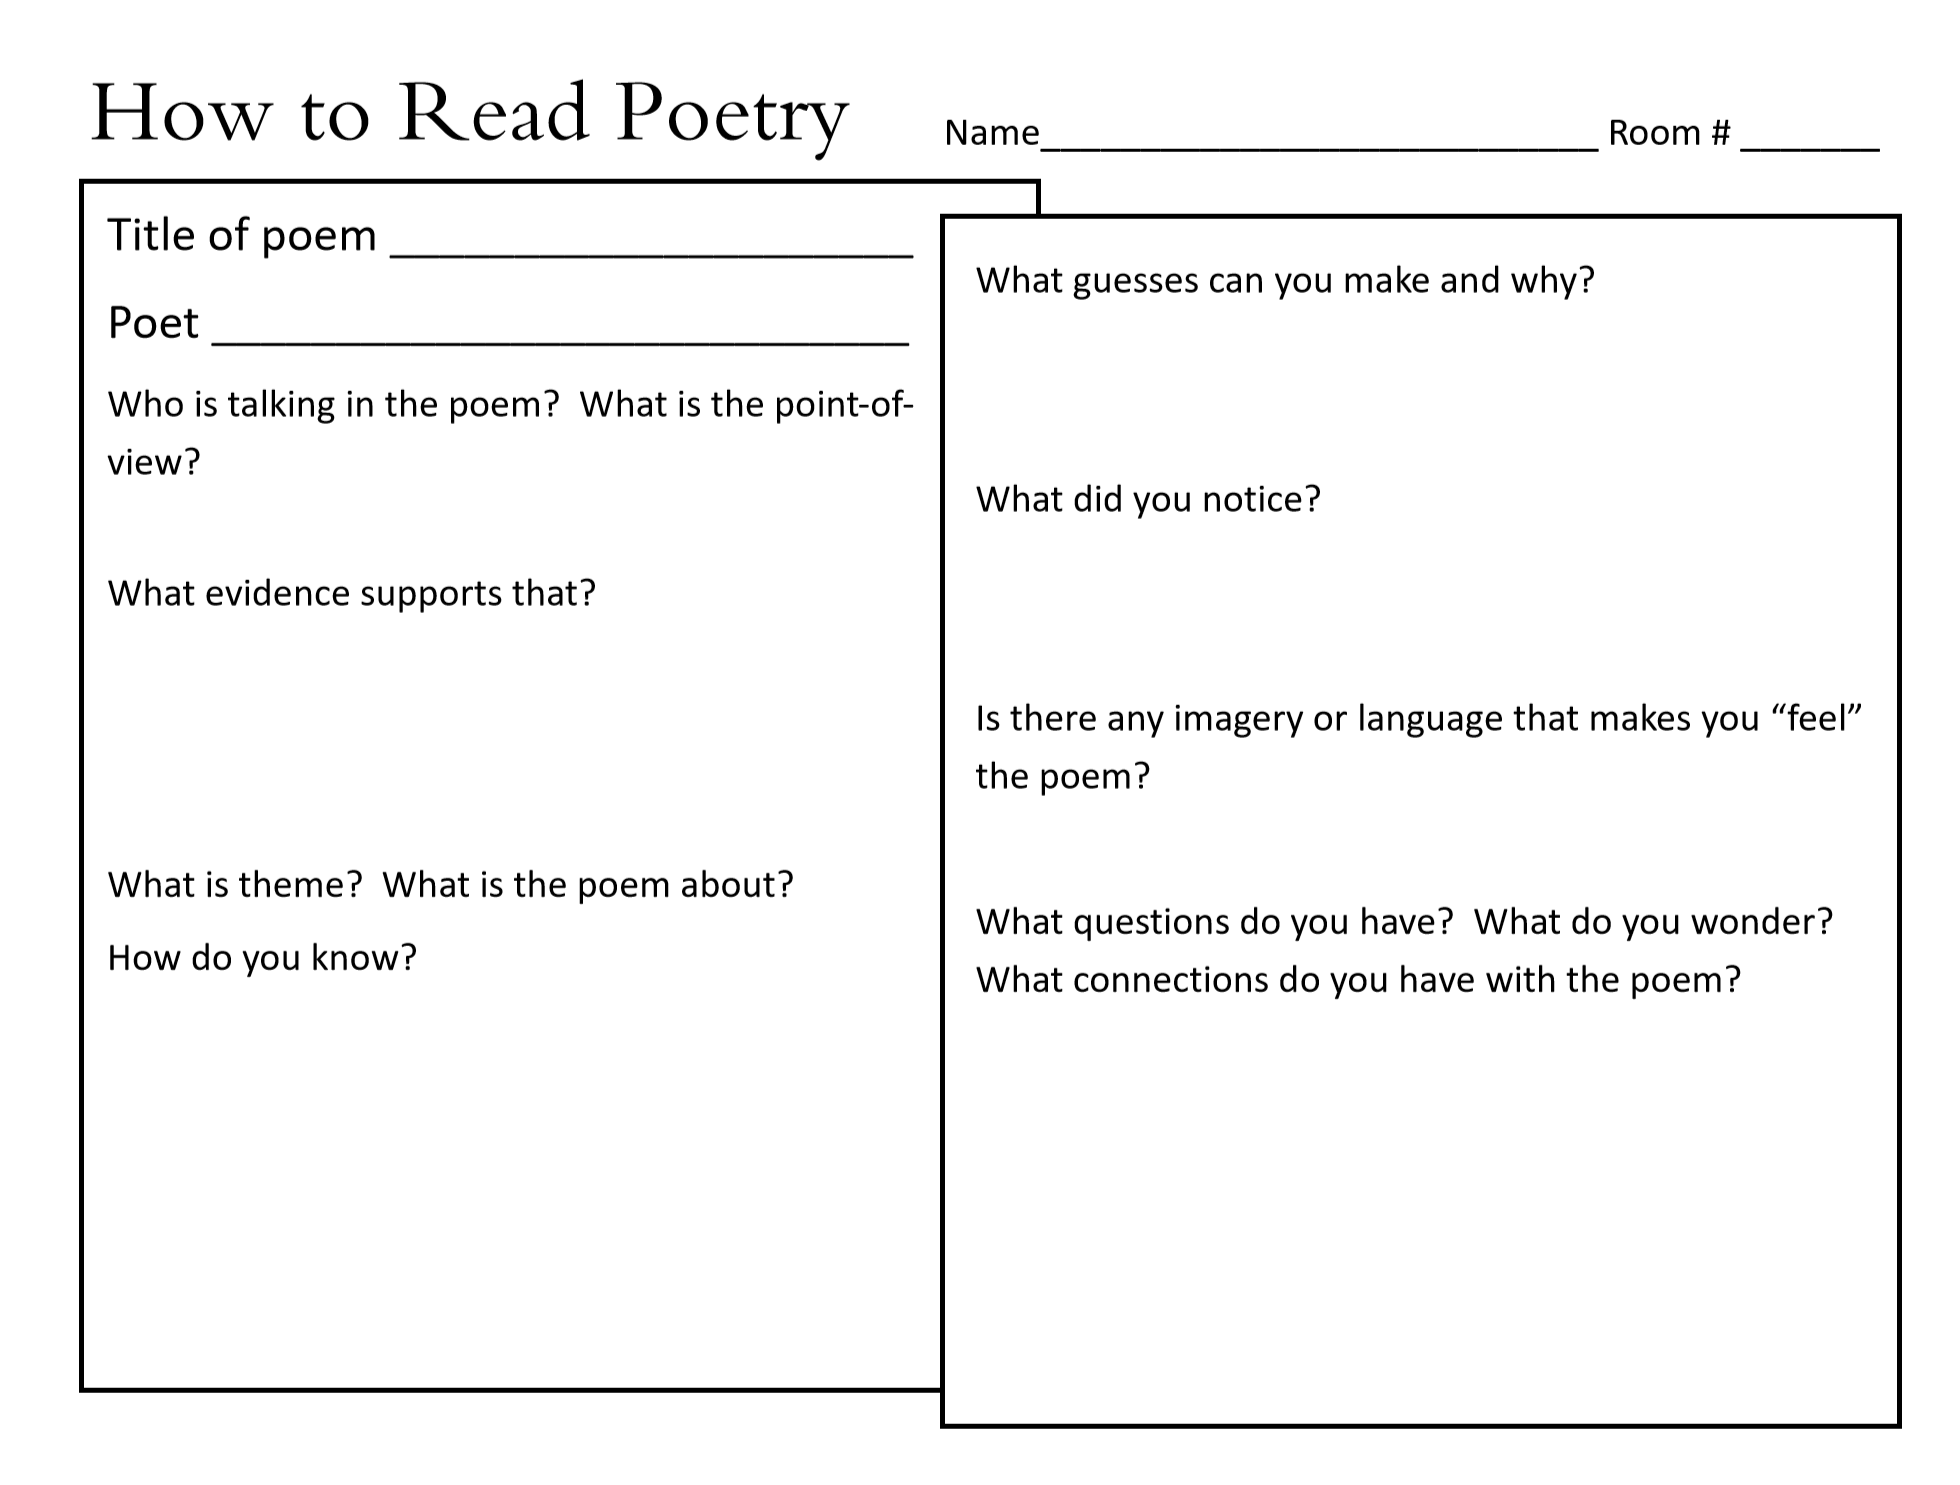 medium resolution of How to Read Poetry is a graphic organizer designed to help students analyze  poetry.   Poetry graphic organizers